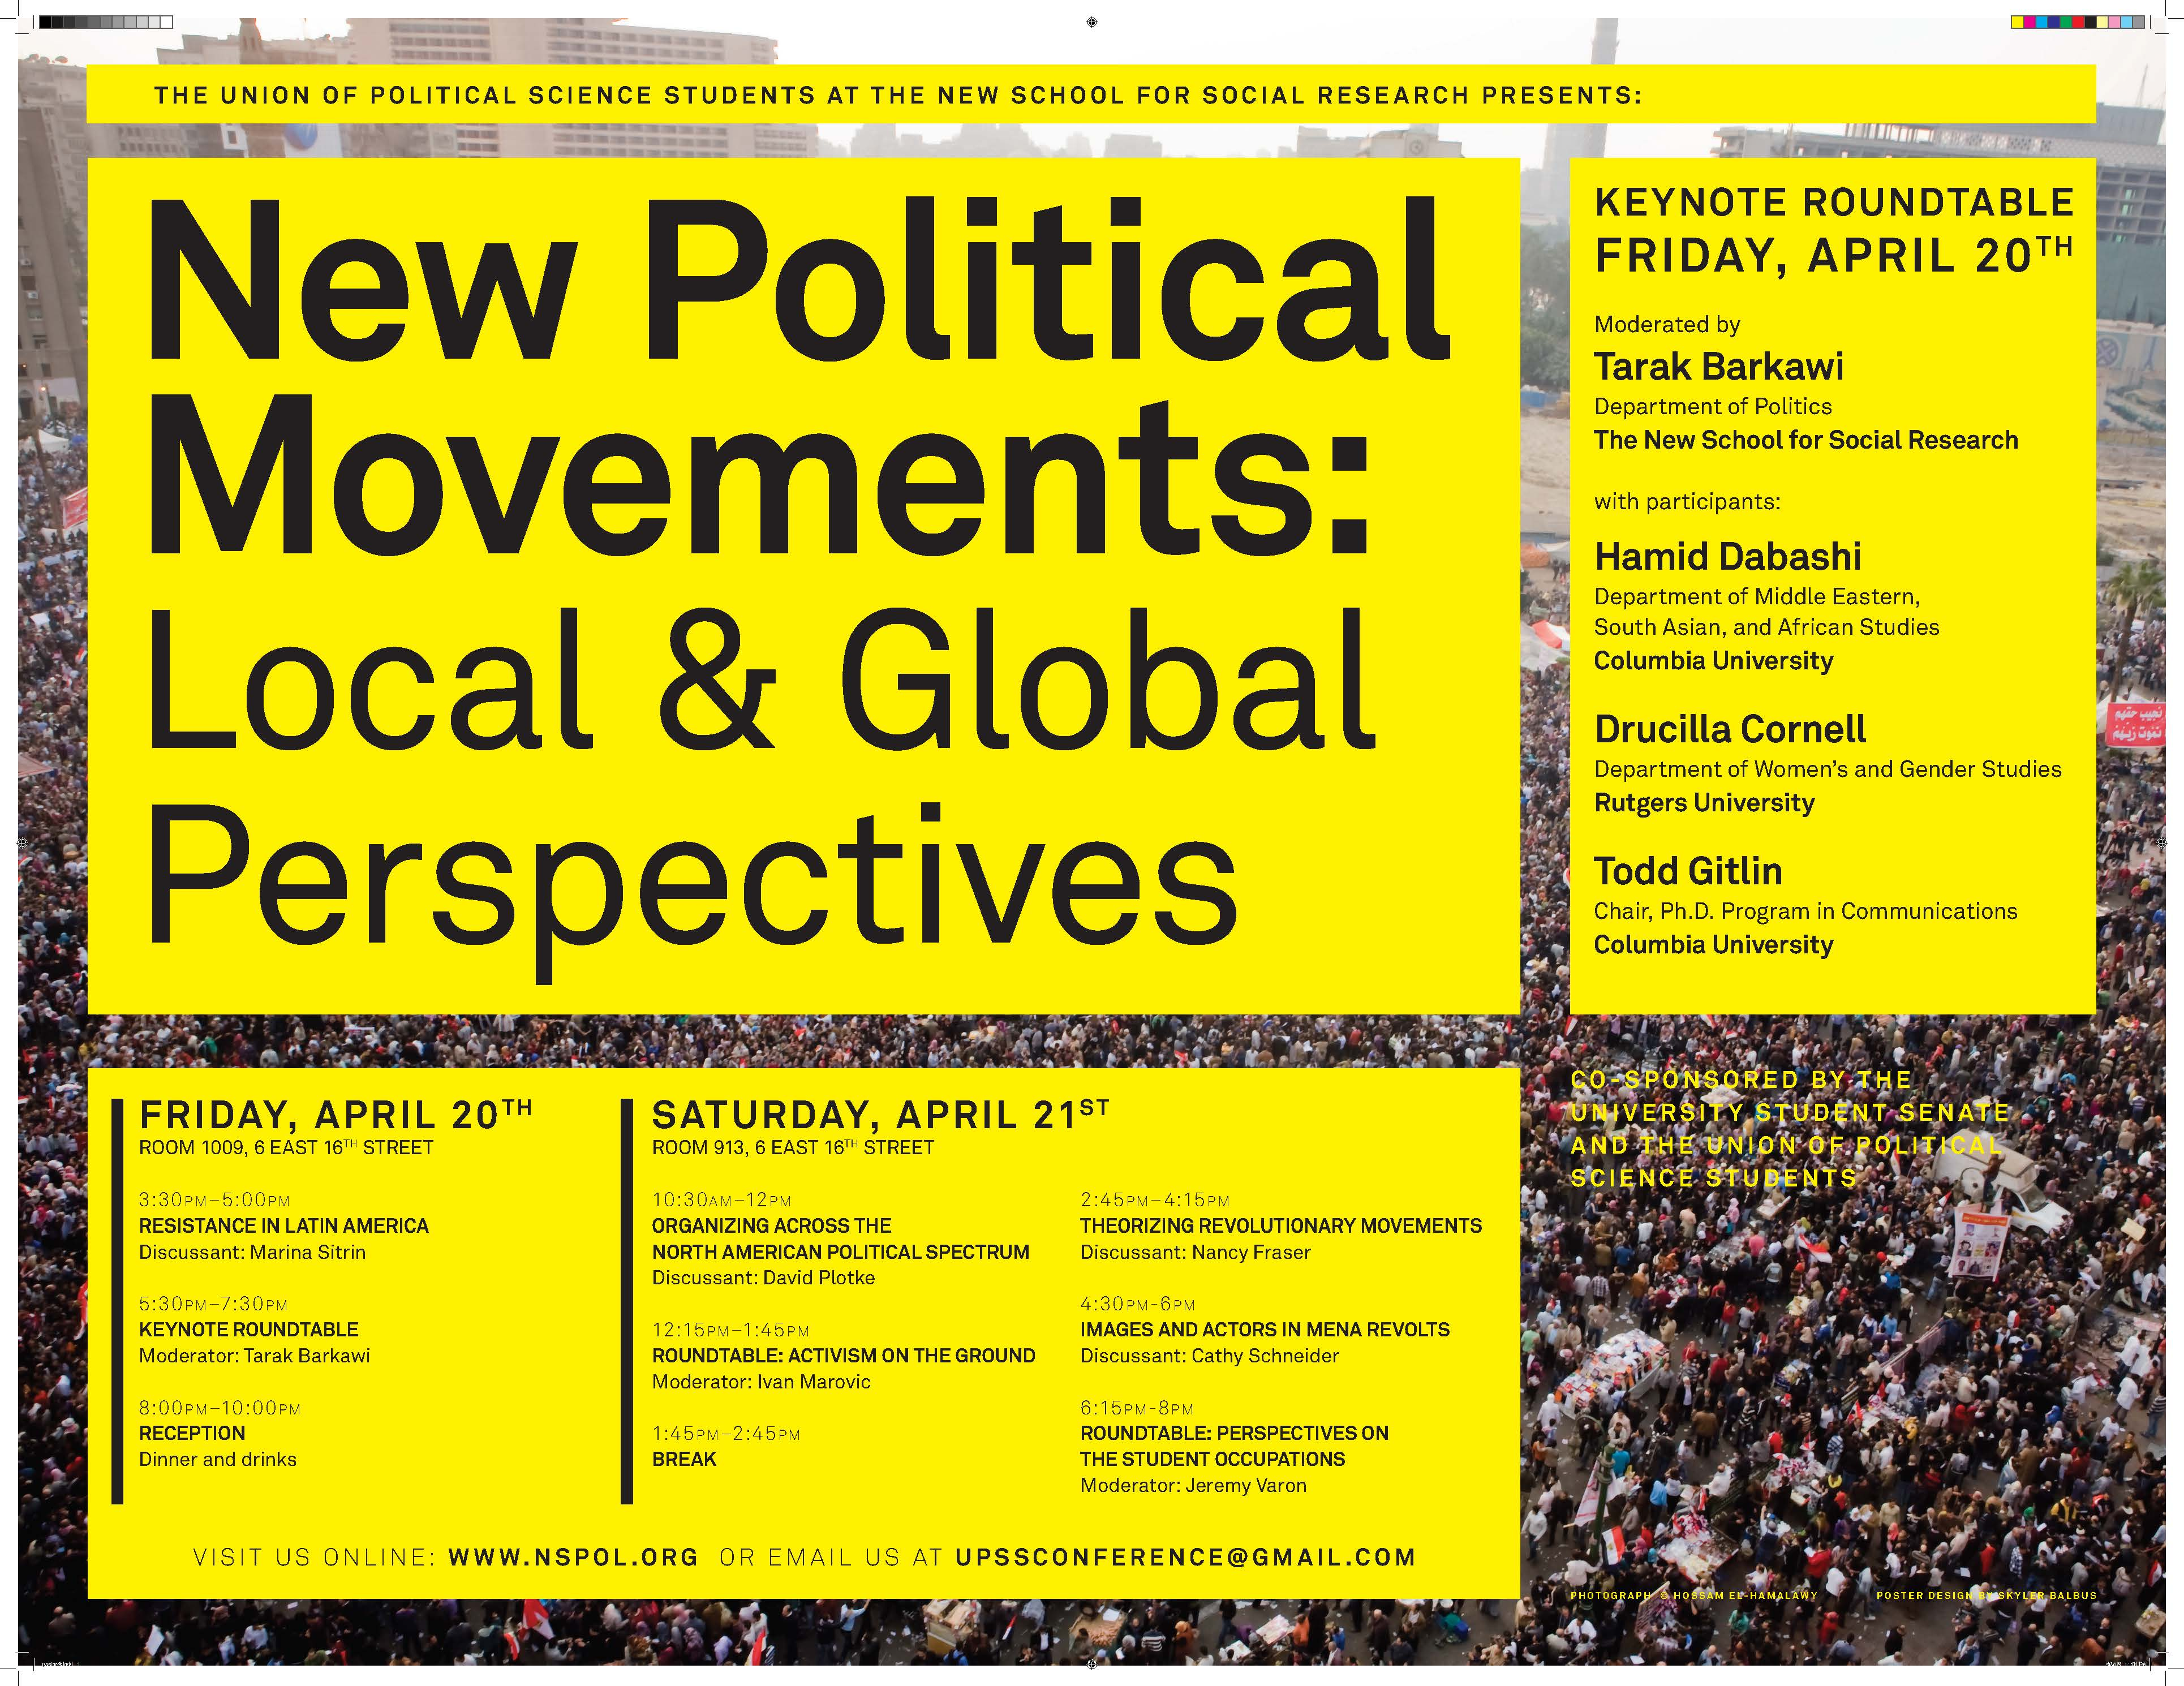 New Political Movements conference at New School for Social Research – 4/21